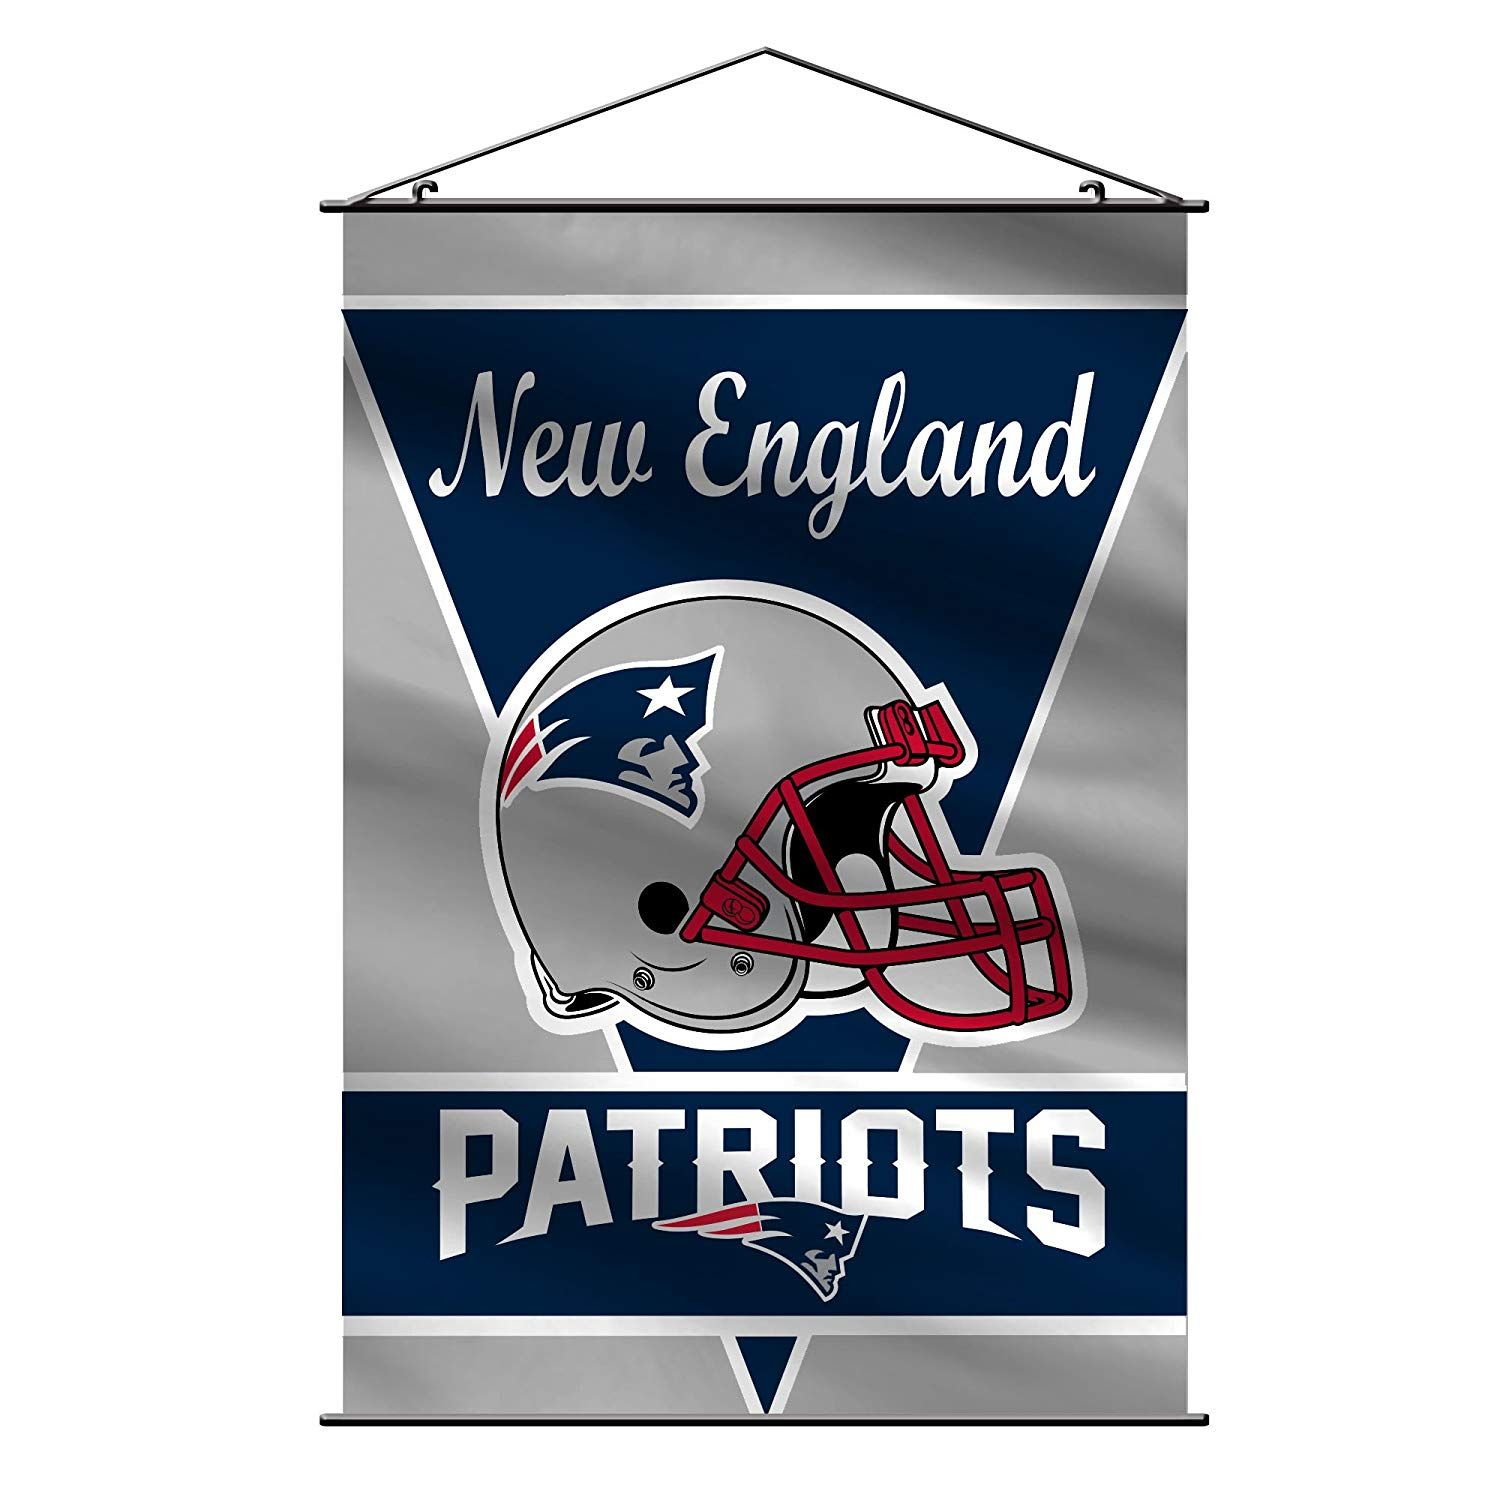 Nfl Products New England Patriots Banner New England Patriots Indoor Banner New England Patriots Colors